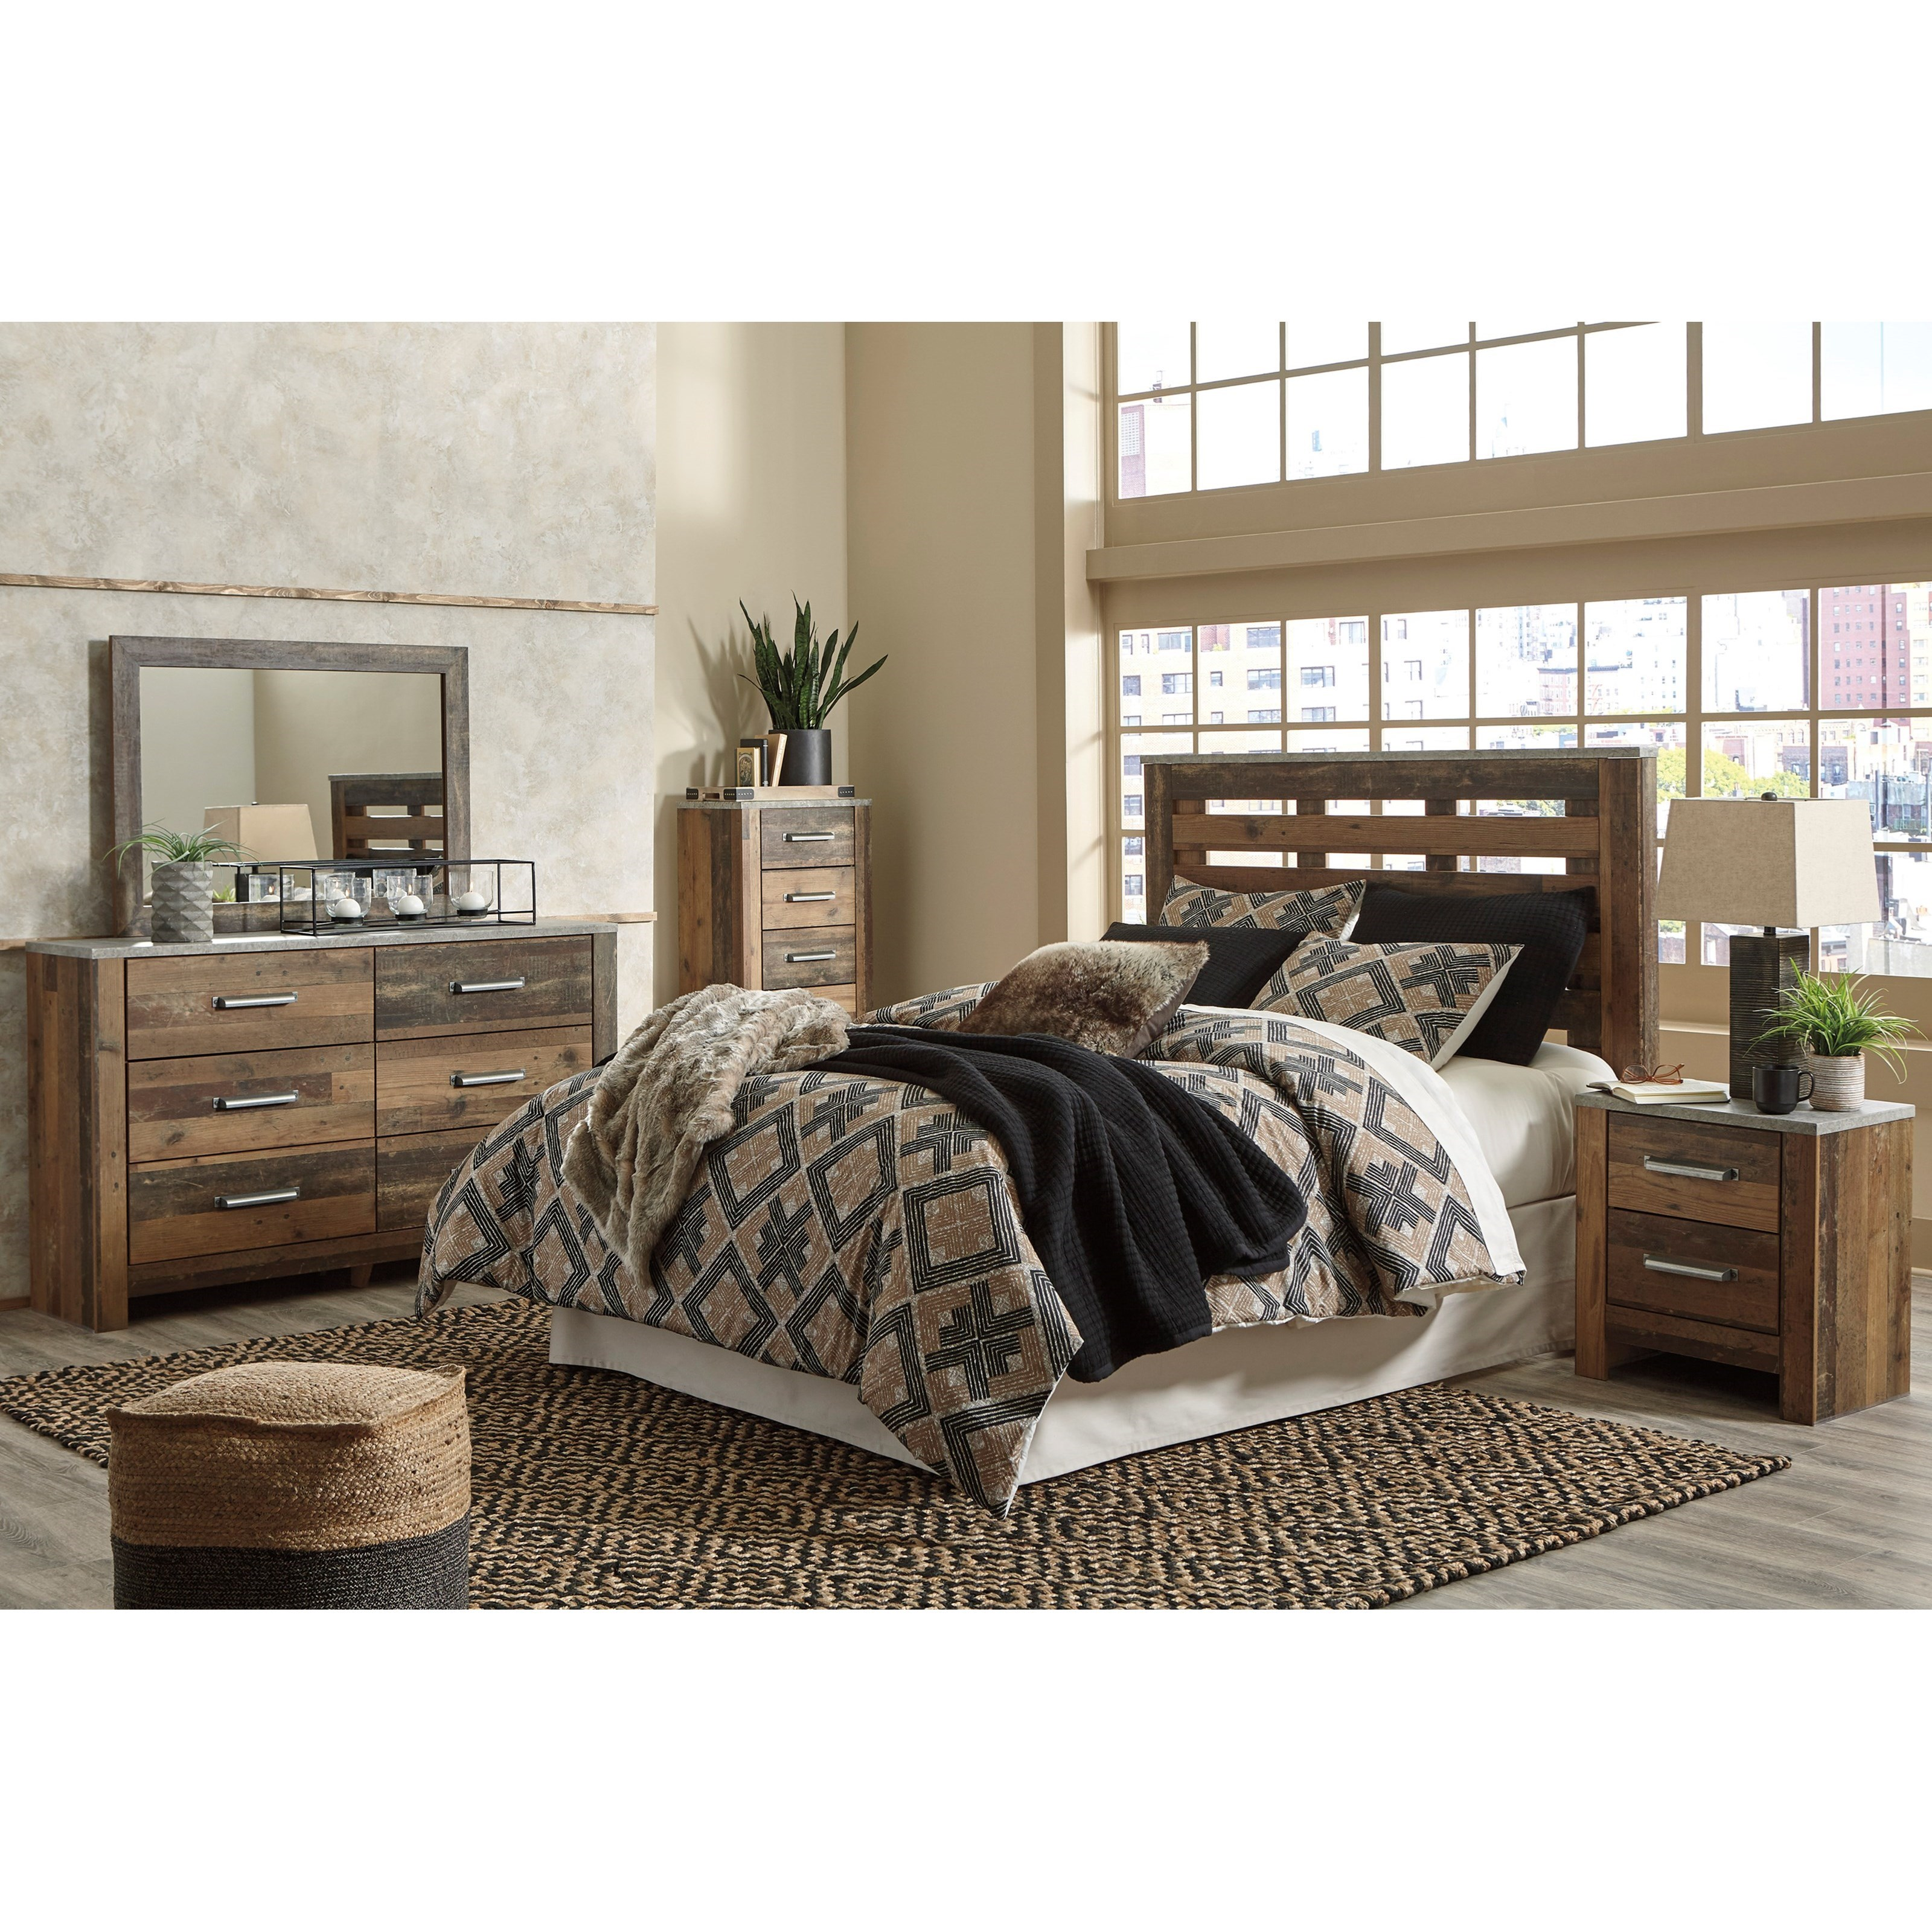 Chadbrook Queen Bedroom Group by Benchcraft at Miller Waldrop Furniture and Decor